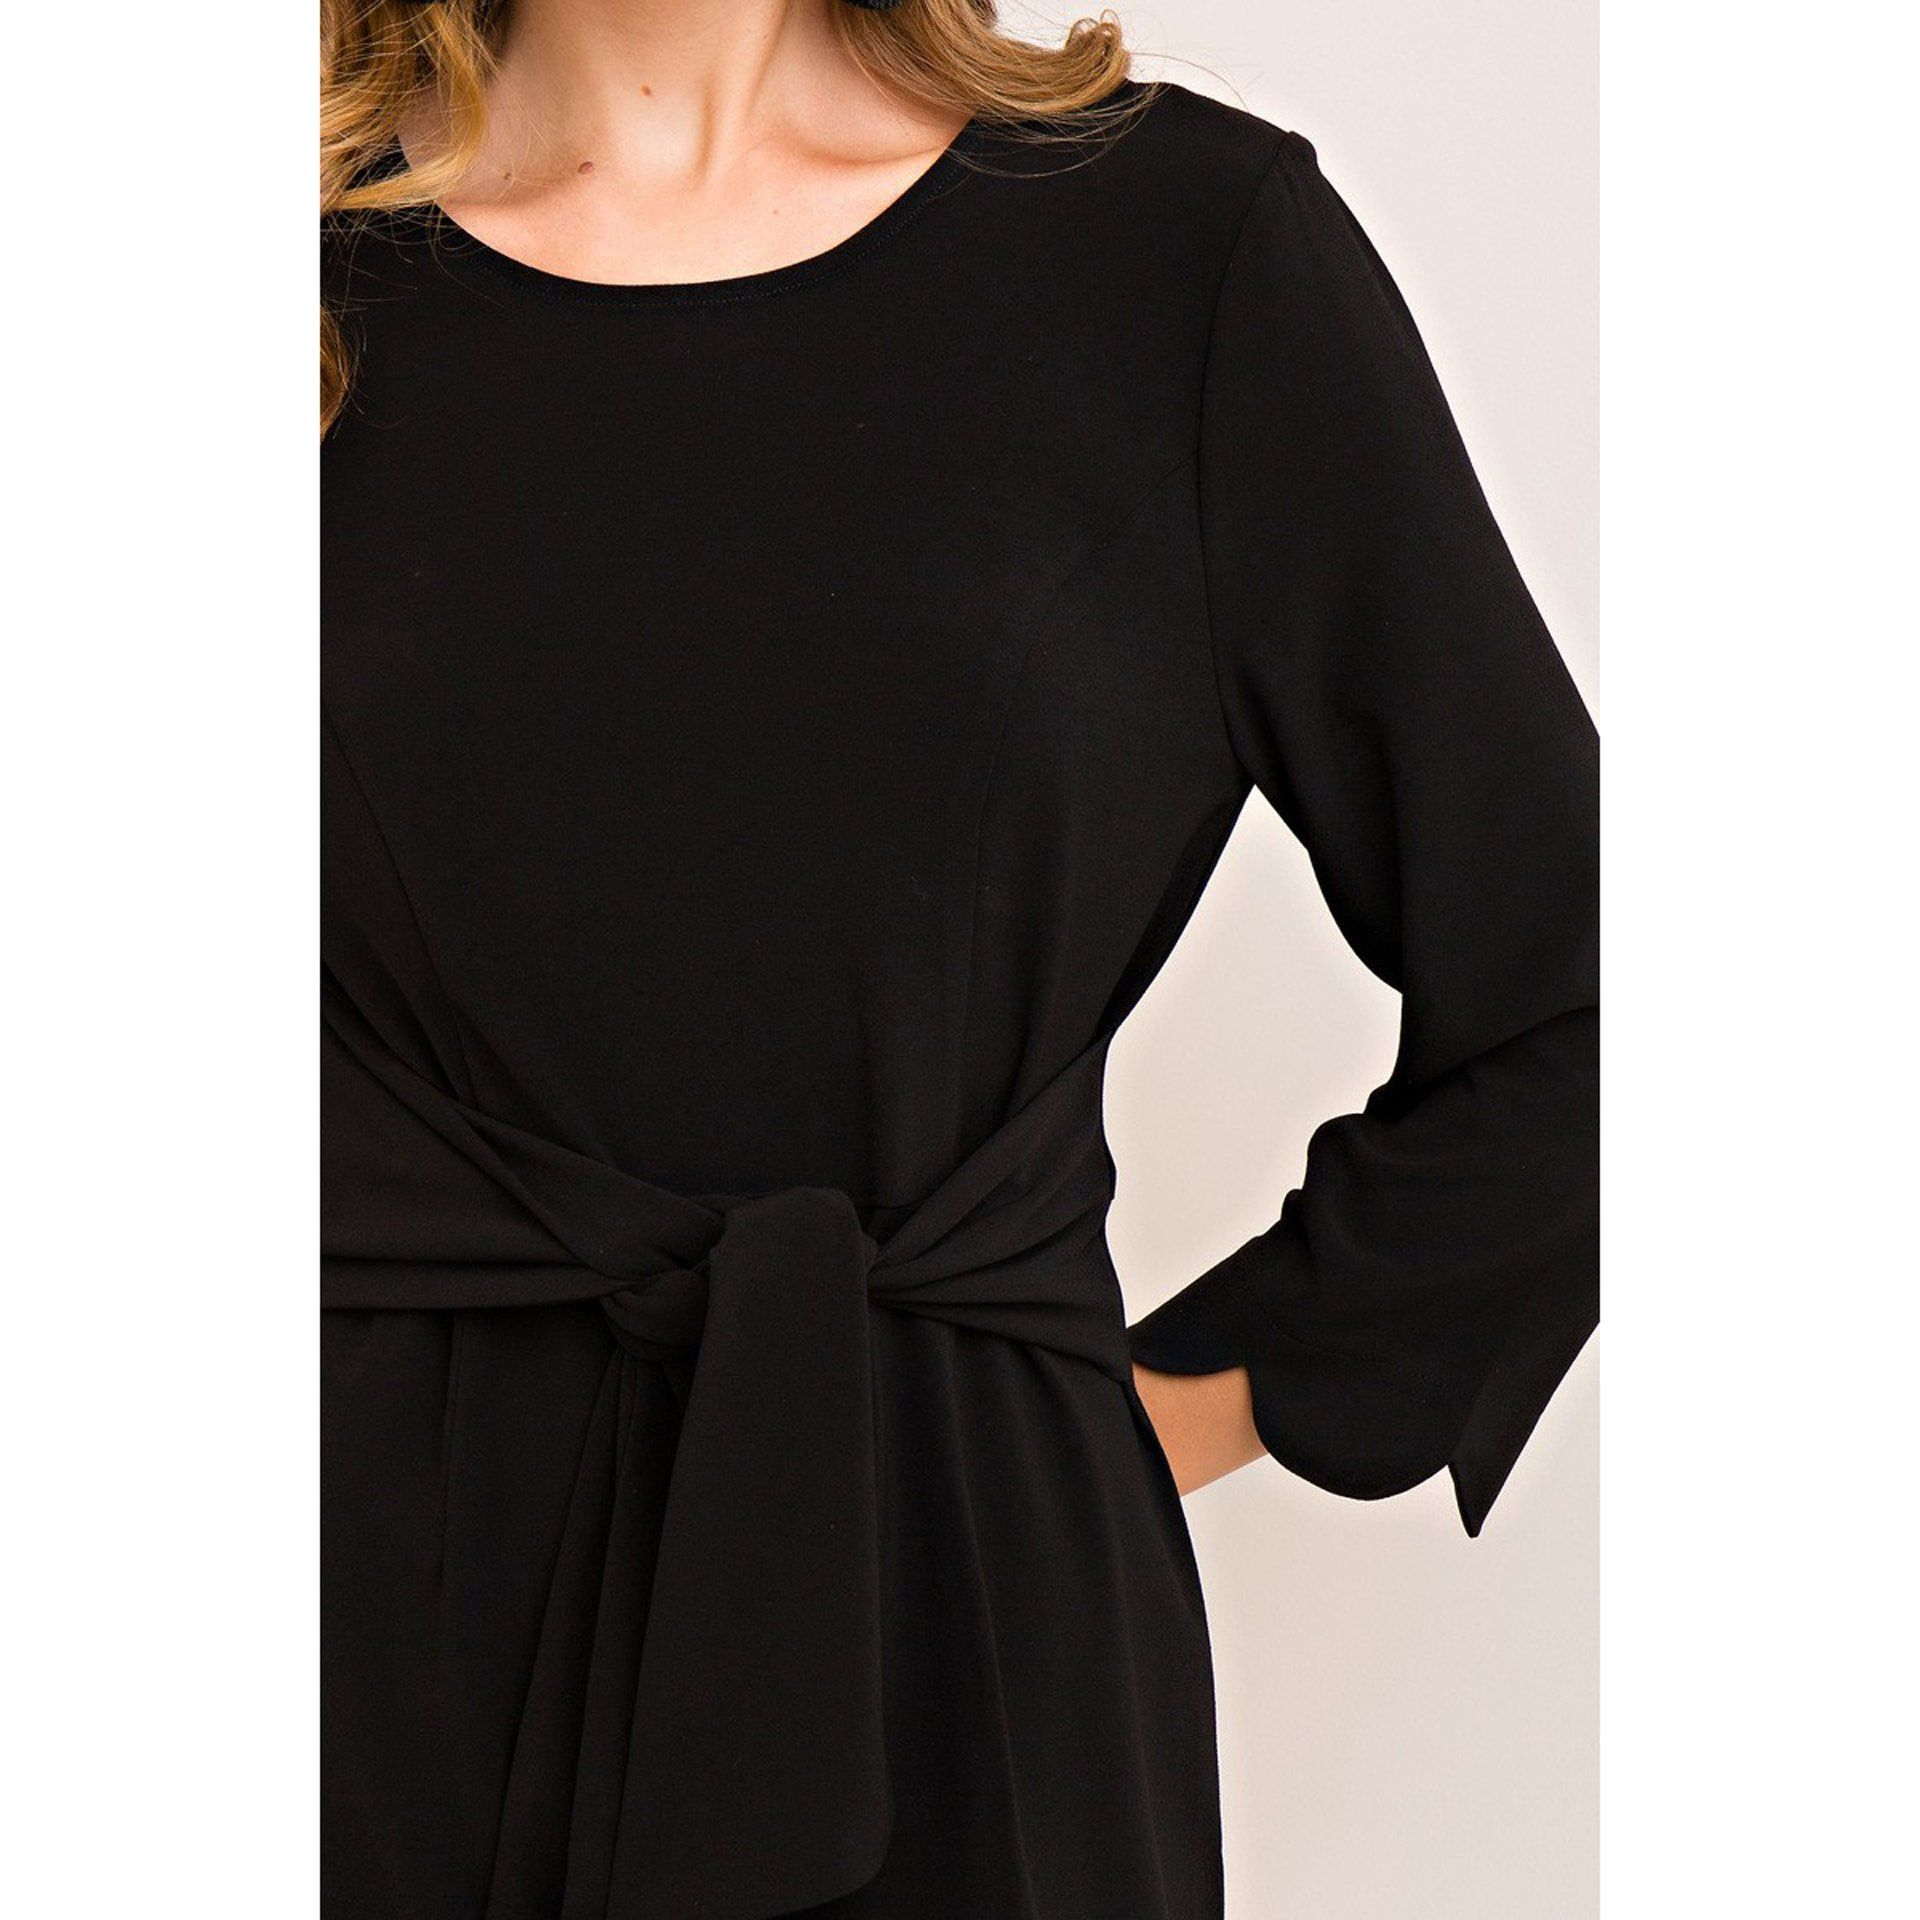 Solid Scalloped A-Line Dress with Two-Way Tie in Black - Arlo and Arrows